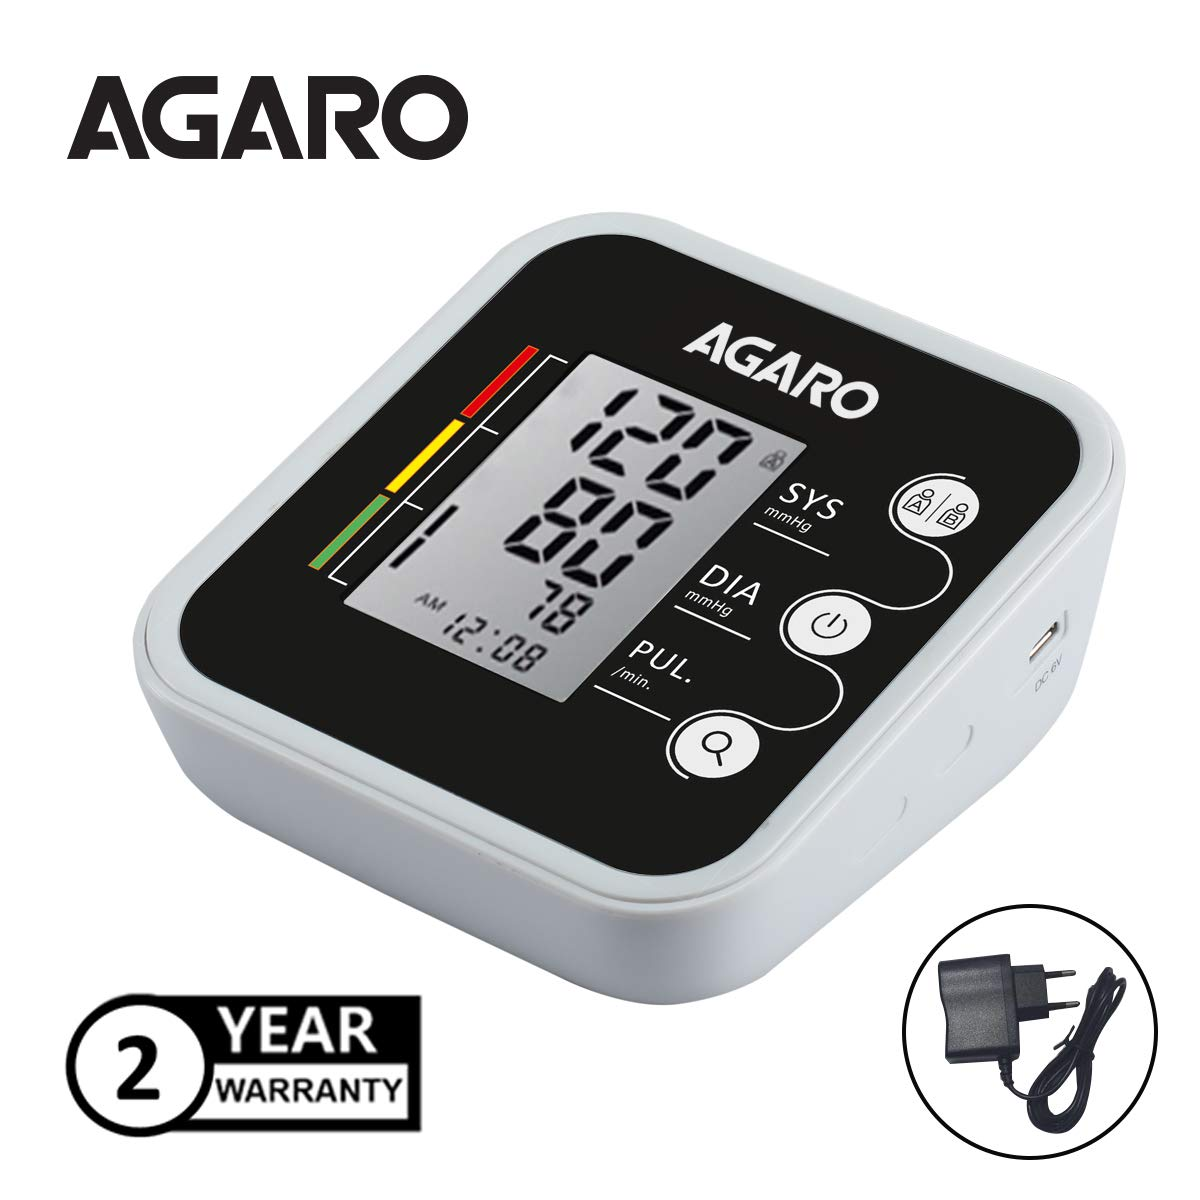 AGARO BP-501A Automatic Digital Blood Pressure Monitor with Dual User